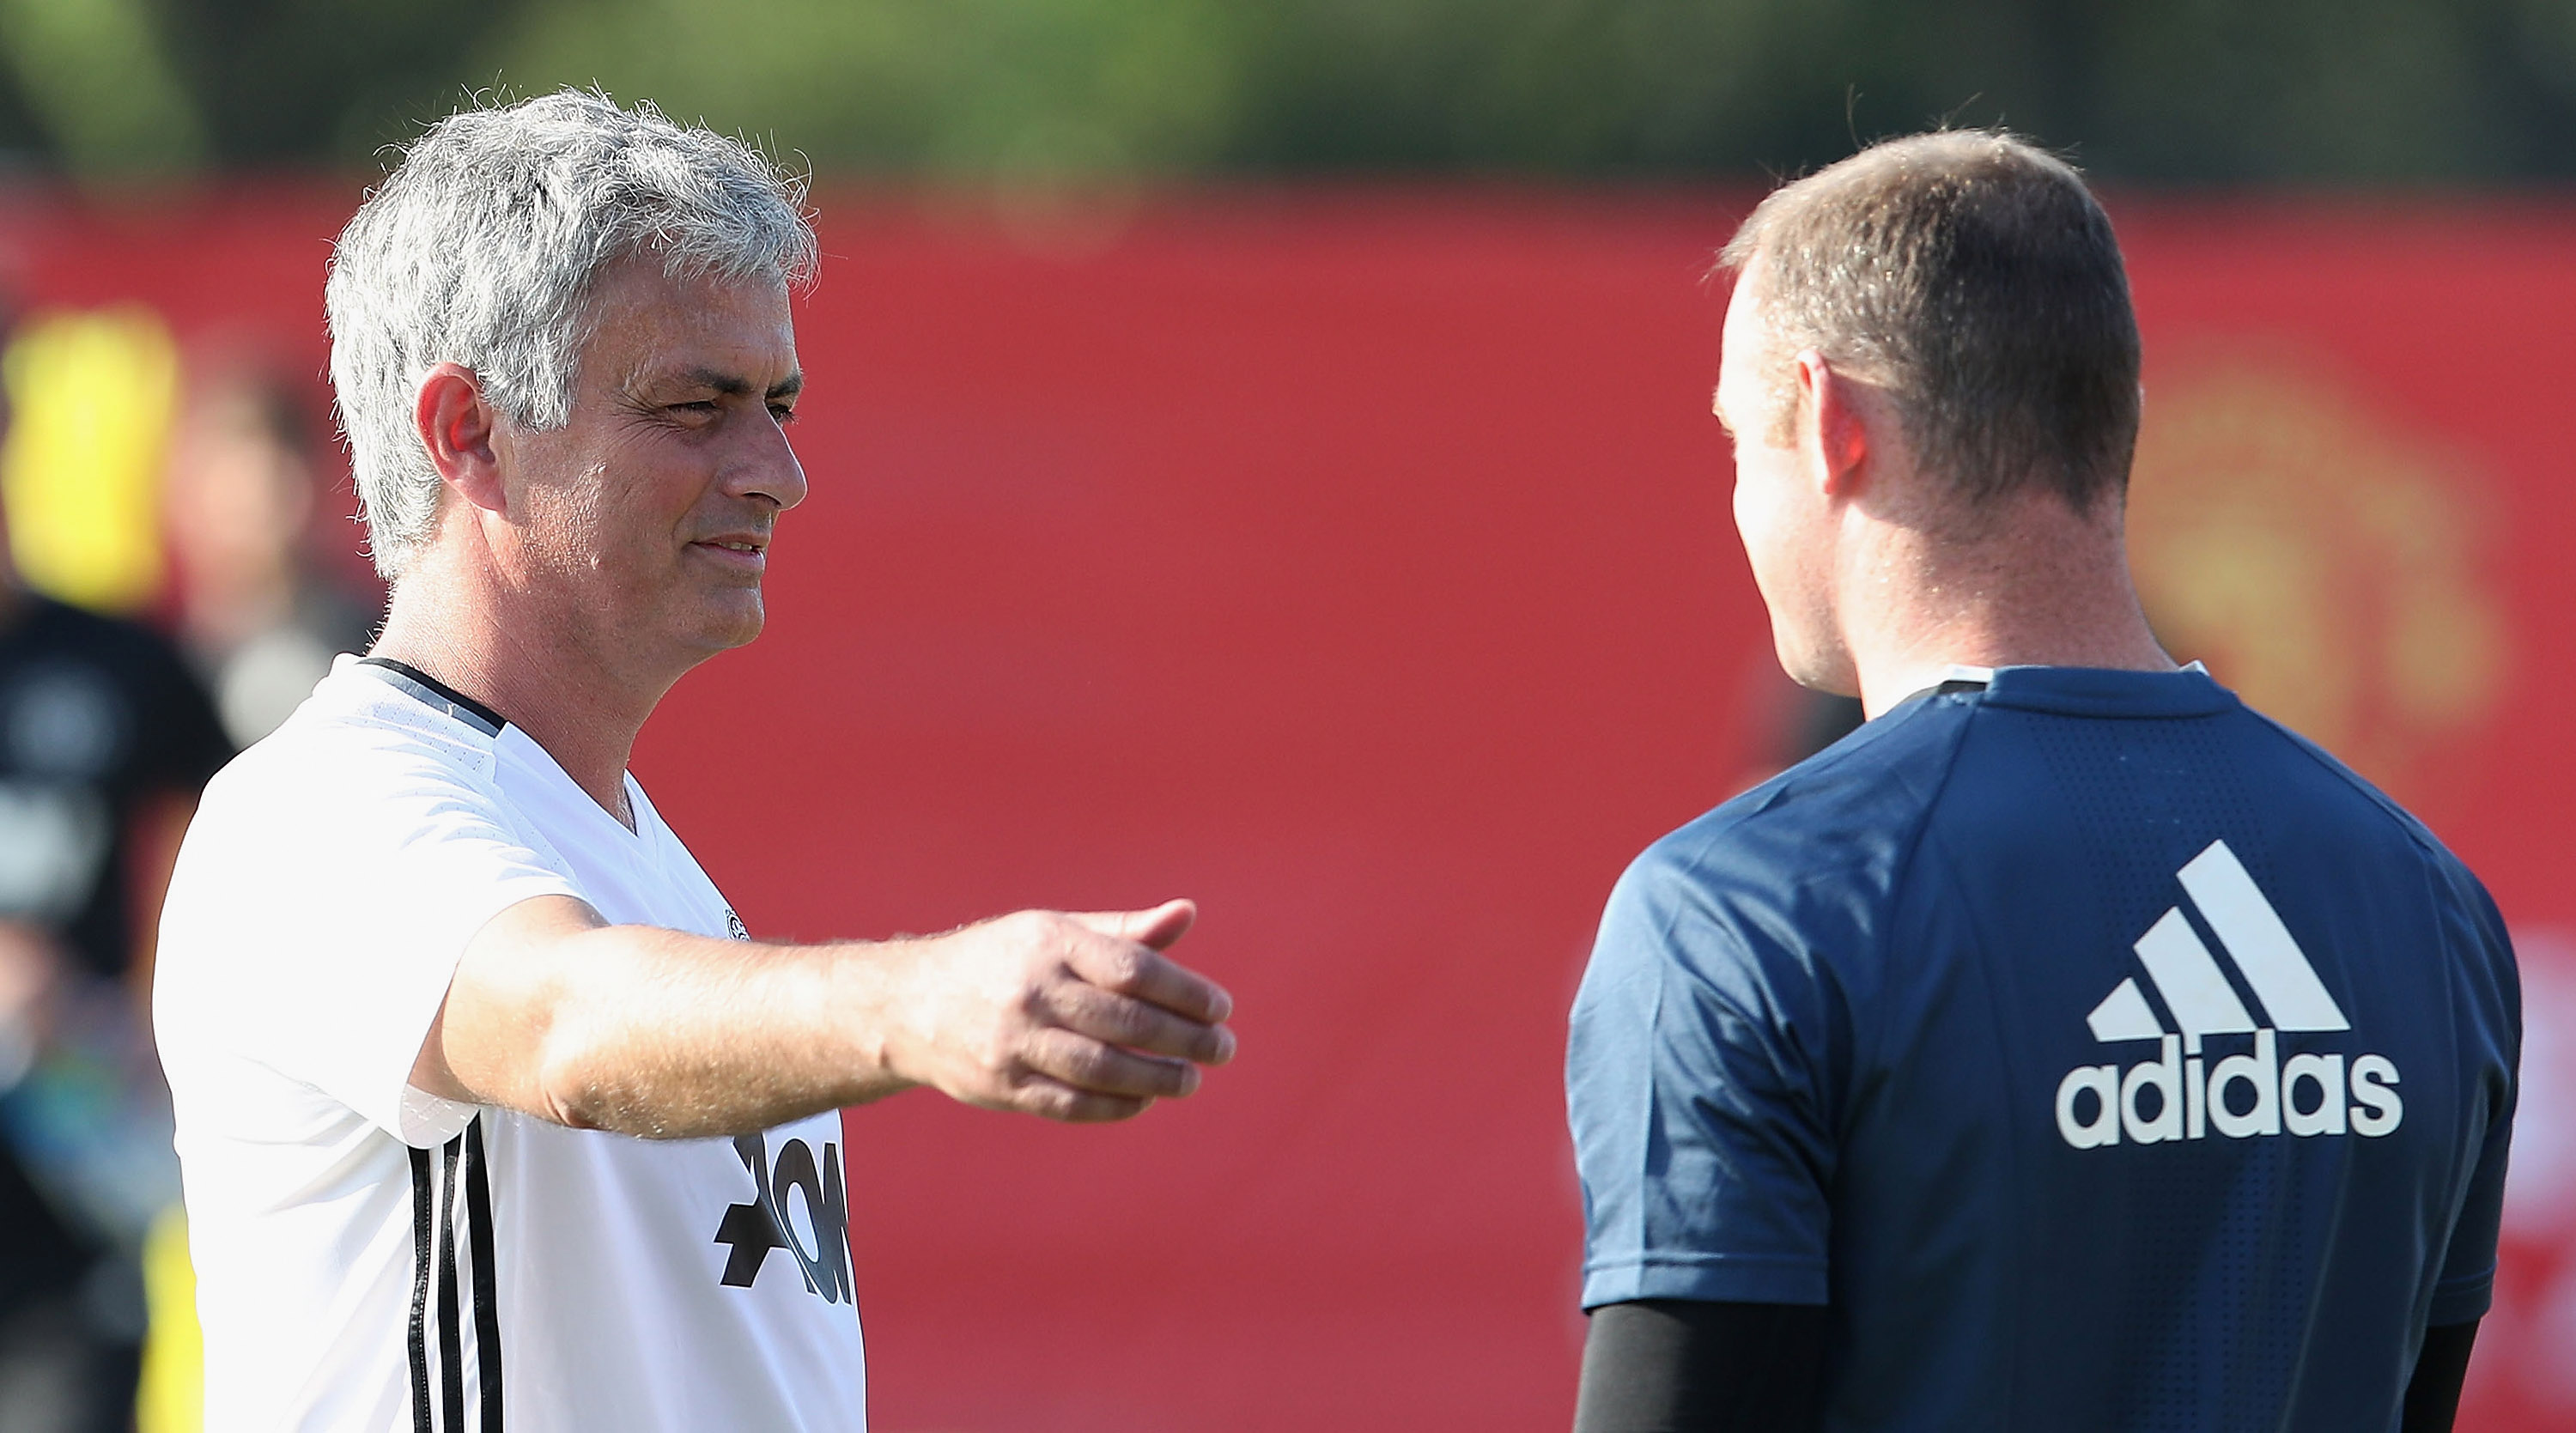 Wayne Rooney convinced by Jose Mourinho's training methods after just ONE session